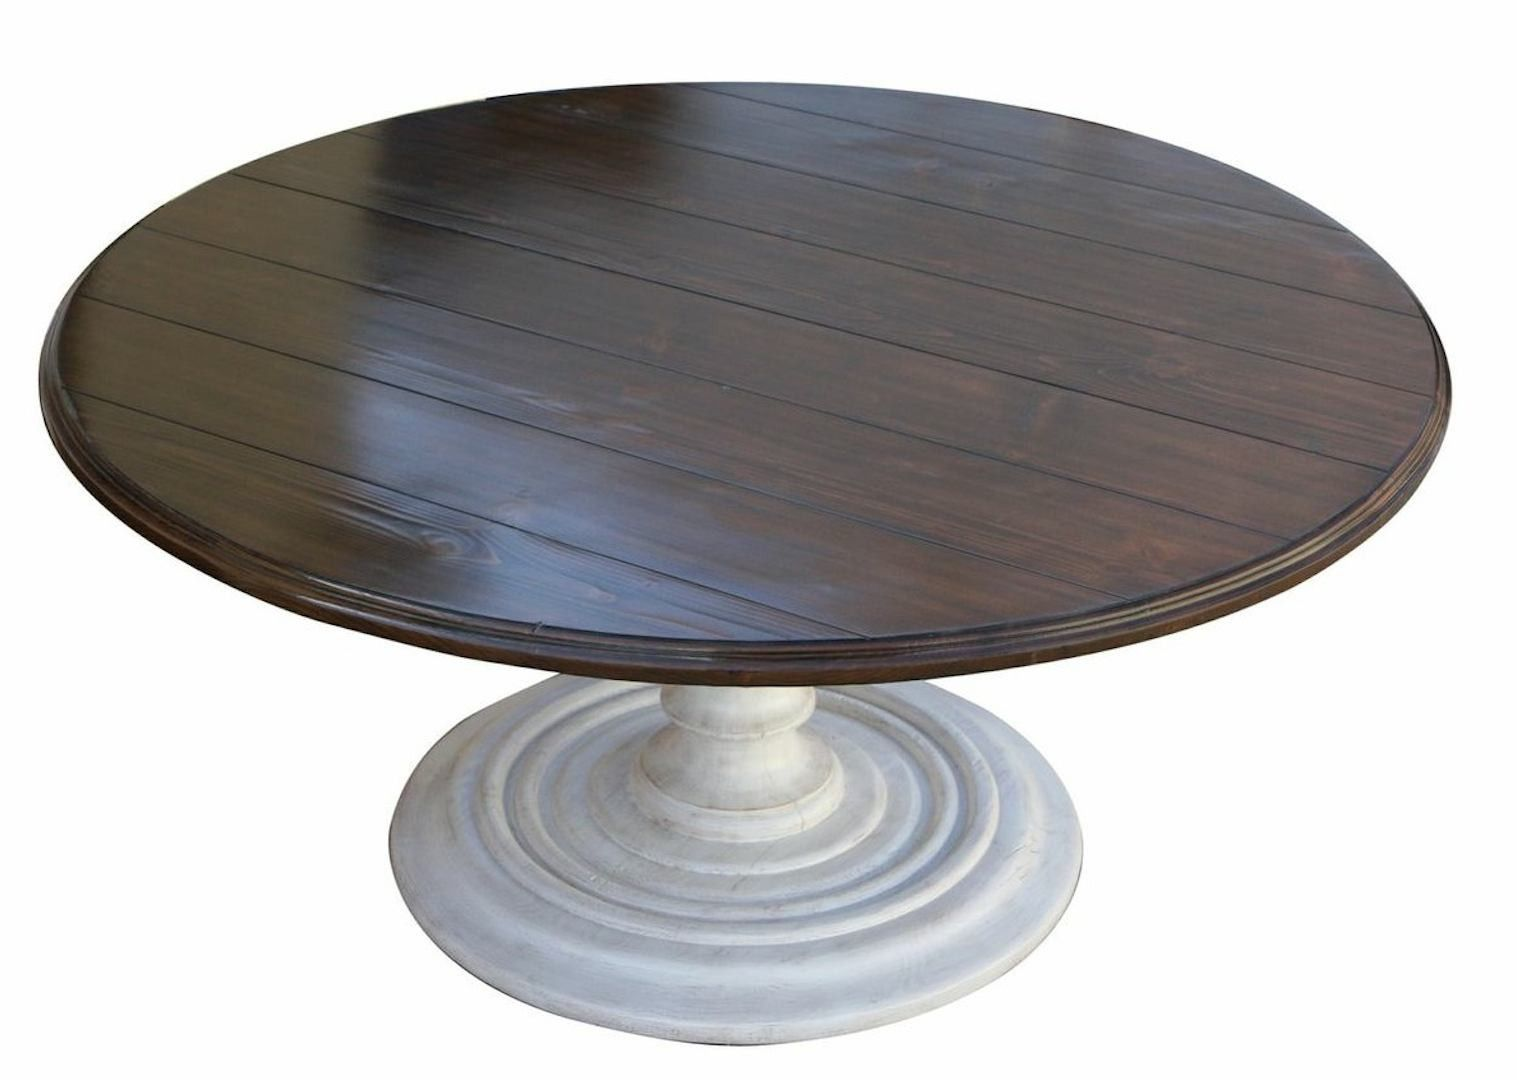 Salvaged Wood Plank Round Dining Table  Wood Planks Round Dining Inspiration Plank Dining Room Table Decorating Design